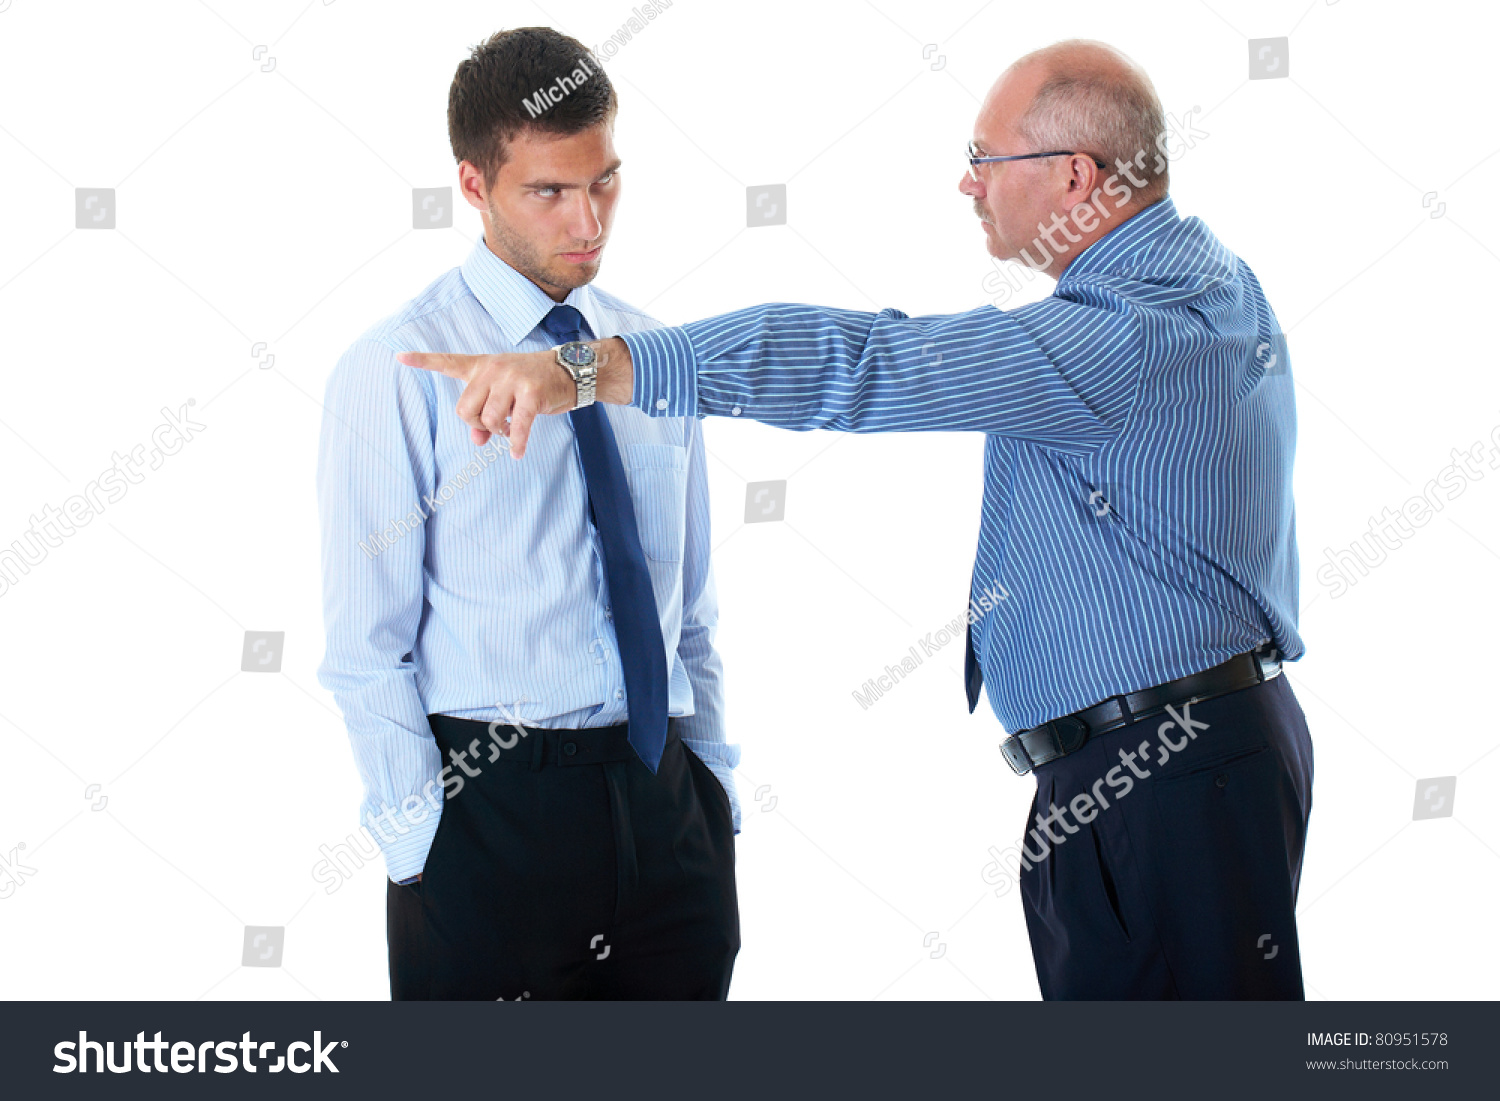 junior office worker gets fired by stock photo shutterstock junior office worker gets fired by senior manager point out his hand and finger